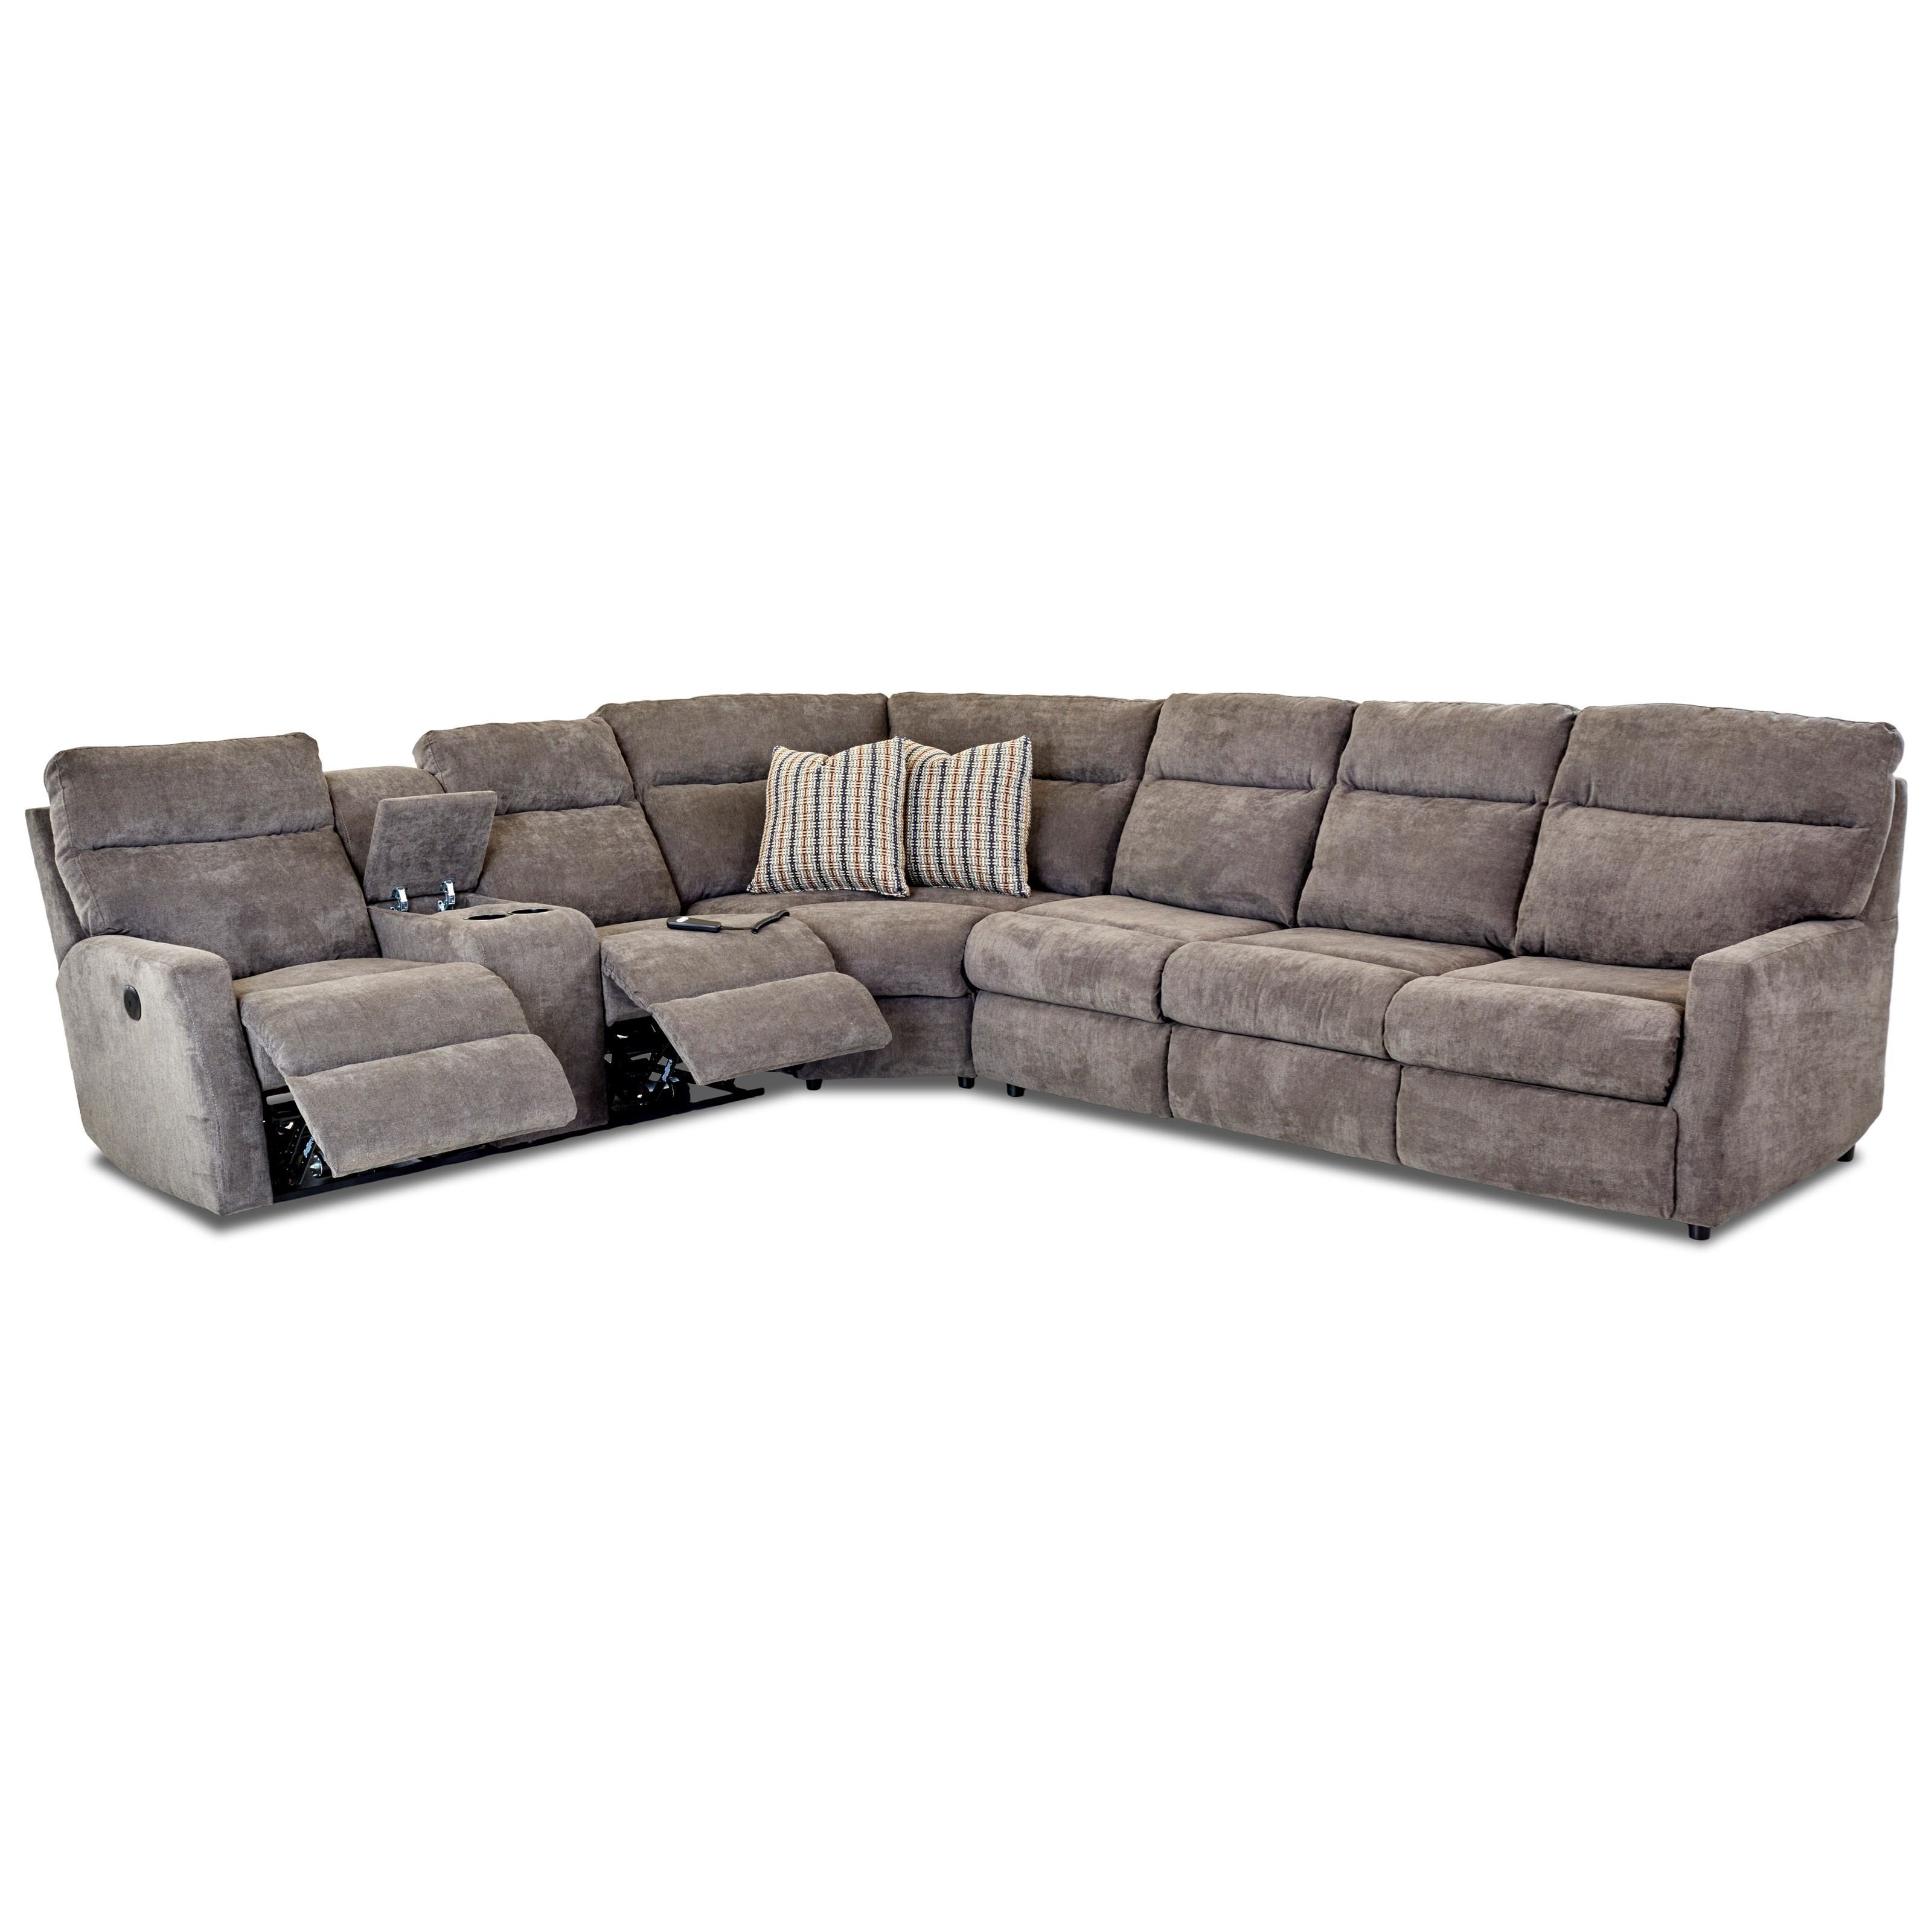 5-Seat Power Reclining Sectional Sofa with Right Arm Facing Innerspring Sleeper Mattress